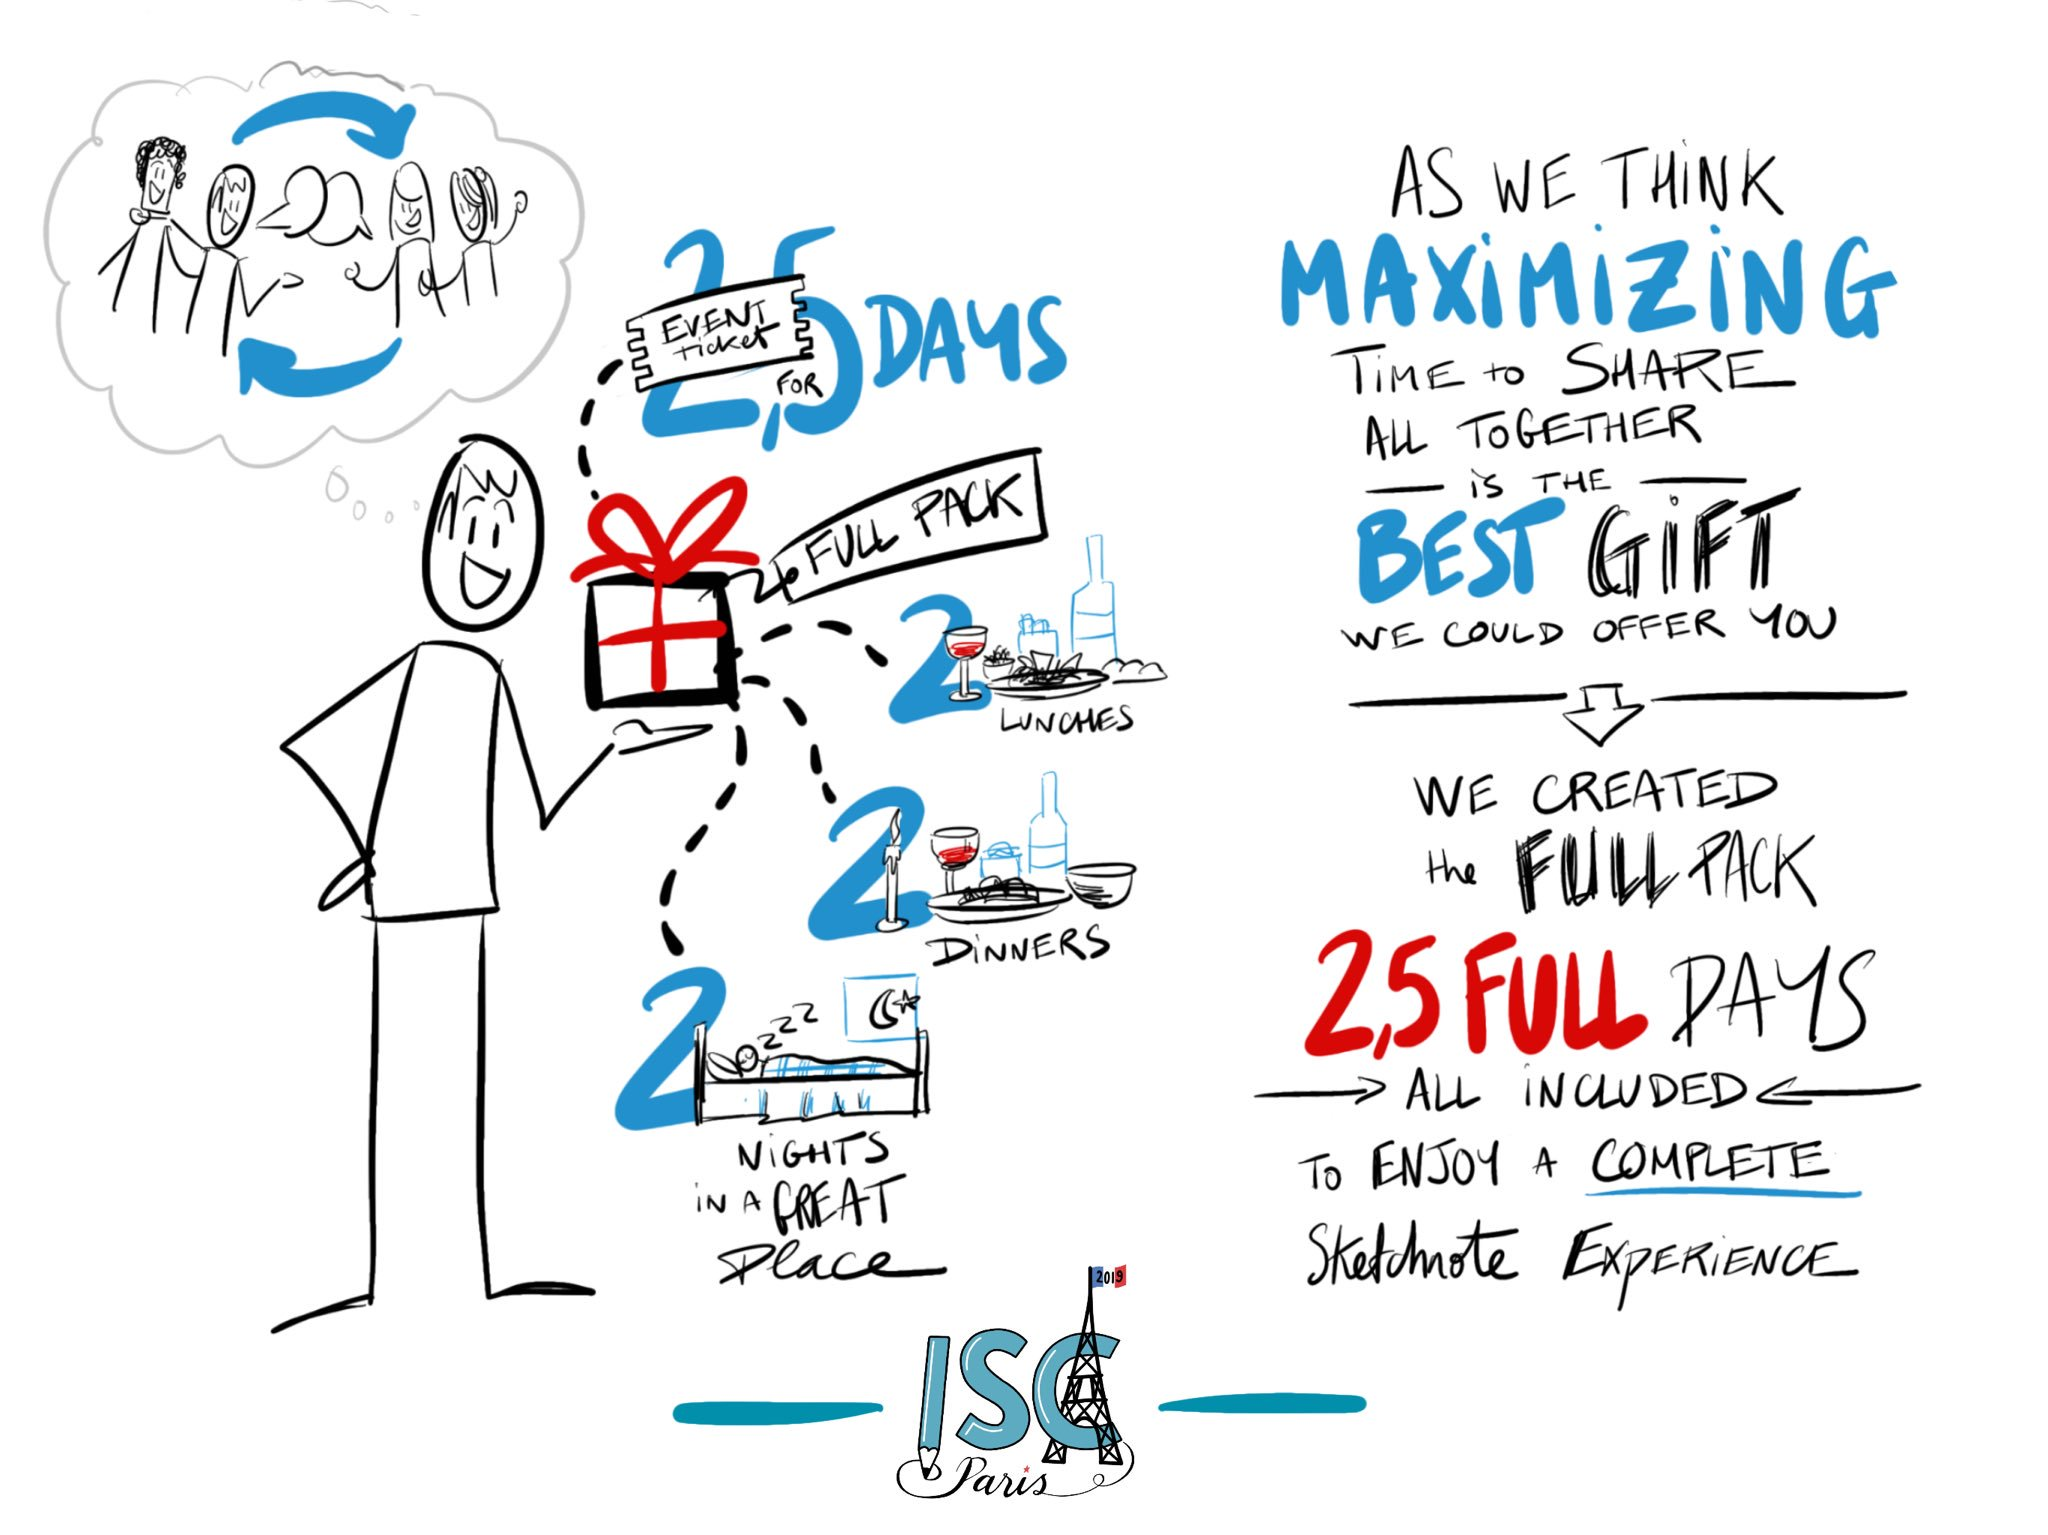 Thisyear we innovated with the Full Pack that include all you need to enjoy 3 days sharing maximum great time all together.   We thought it would be better to explain what Full pack was with a #sketchnote obviously 😄  The organization team @Sketchnote_Camp https://t.co/BbjdWgiwTM